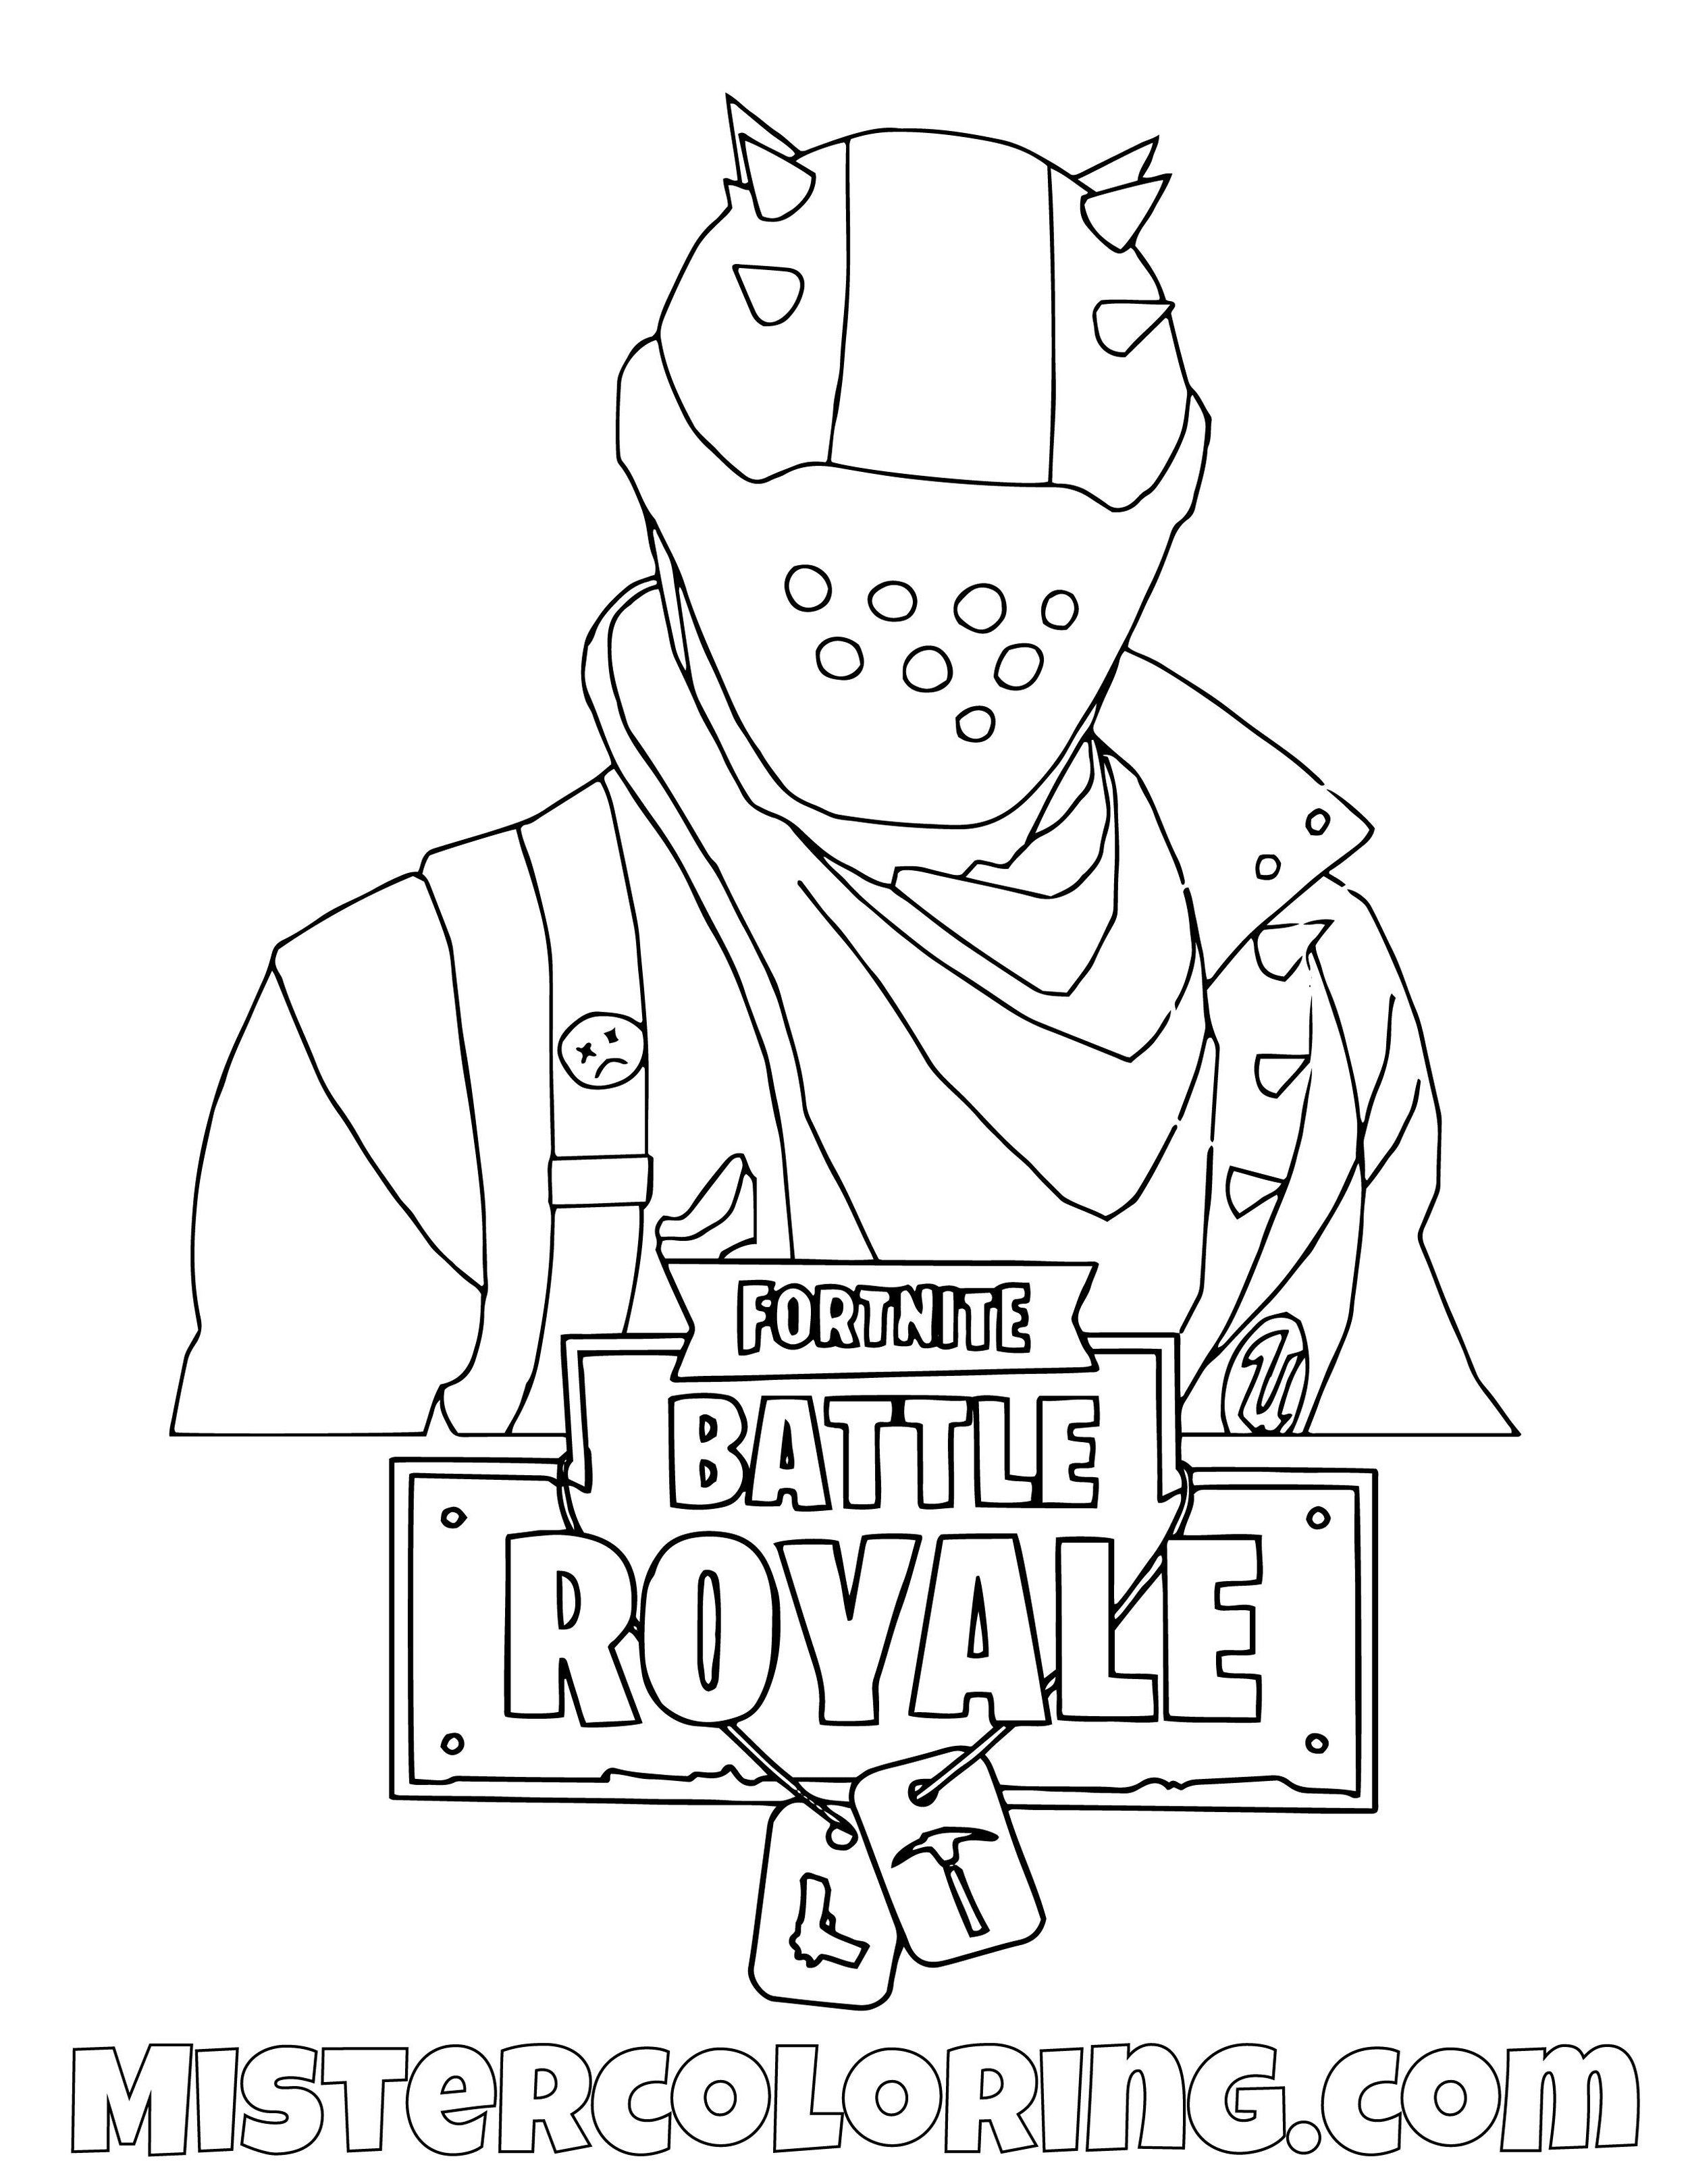 Rust Lord Fortnite Coloring Page